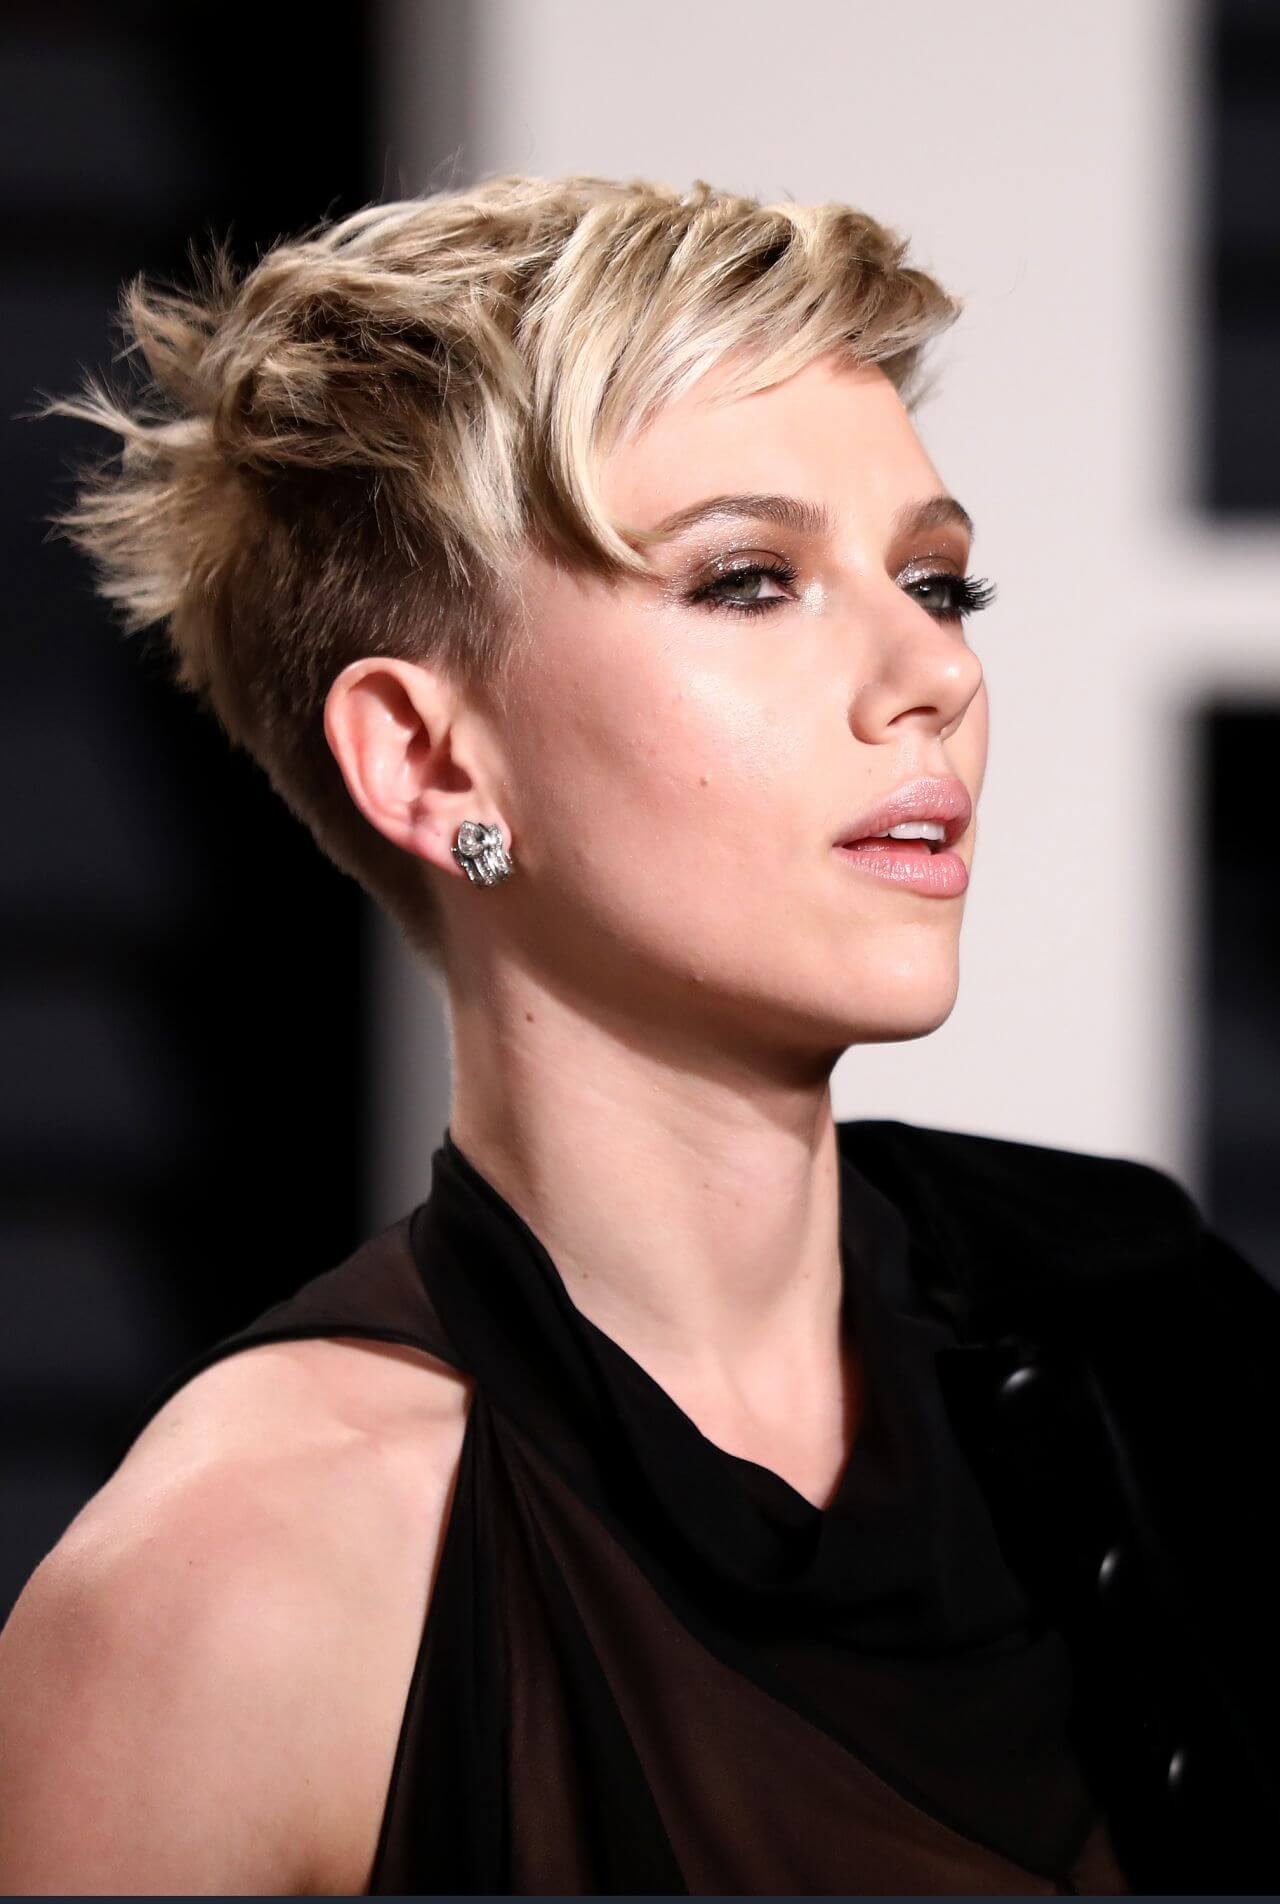 Pixie Haircuts For Women – Get the Perfect Style This Month!